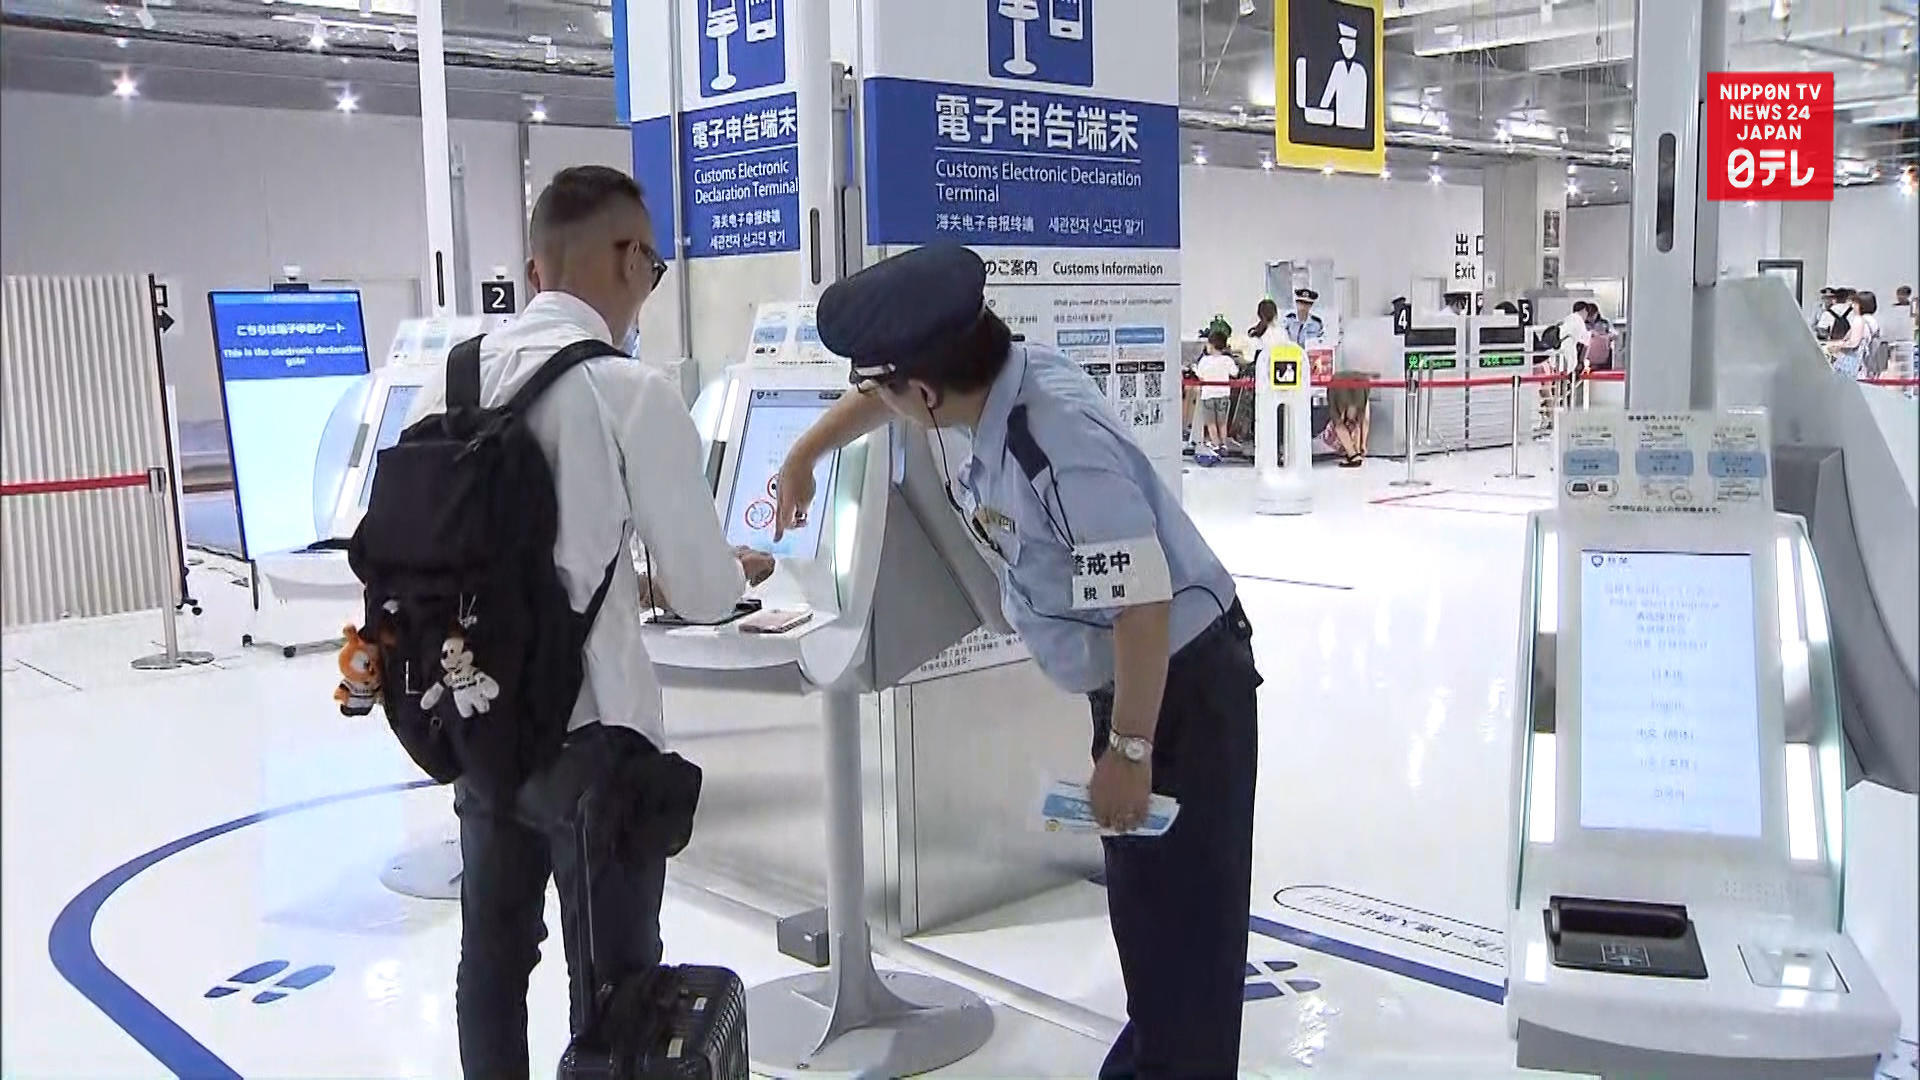 Electronic customs declaration gate at Narita open to all travelers